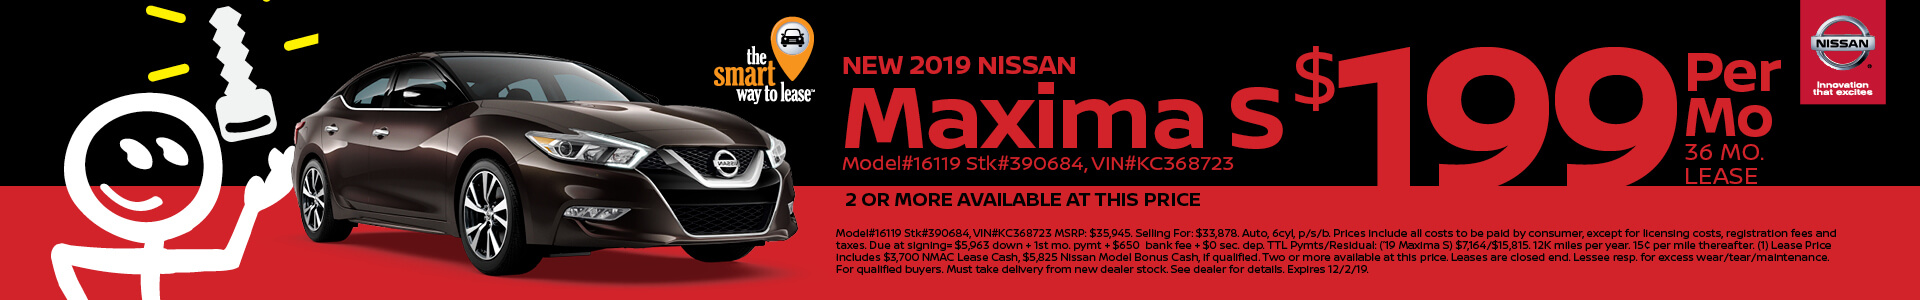 2019 Nissan Maxima Lease for $199